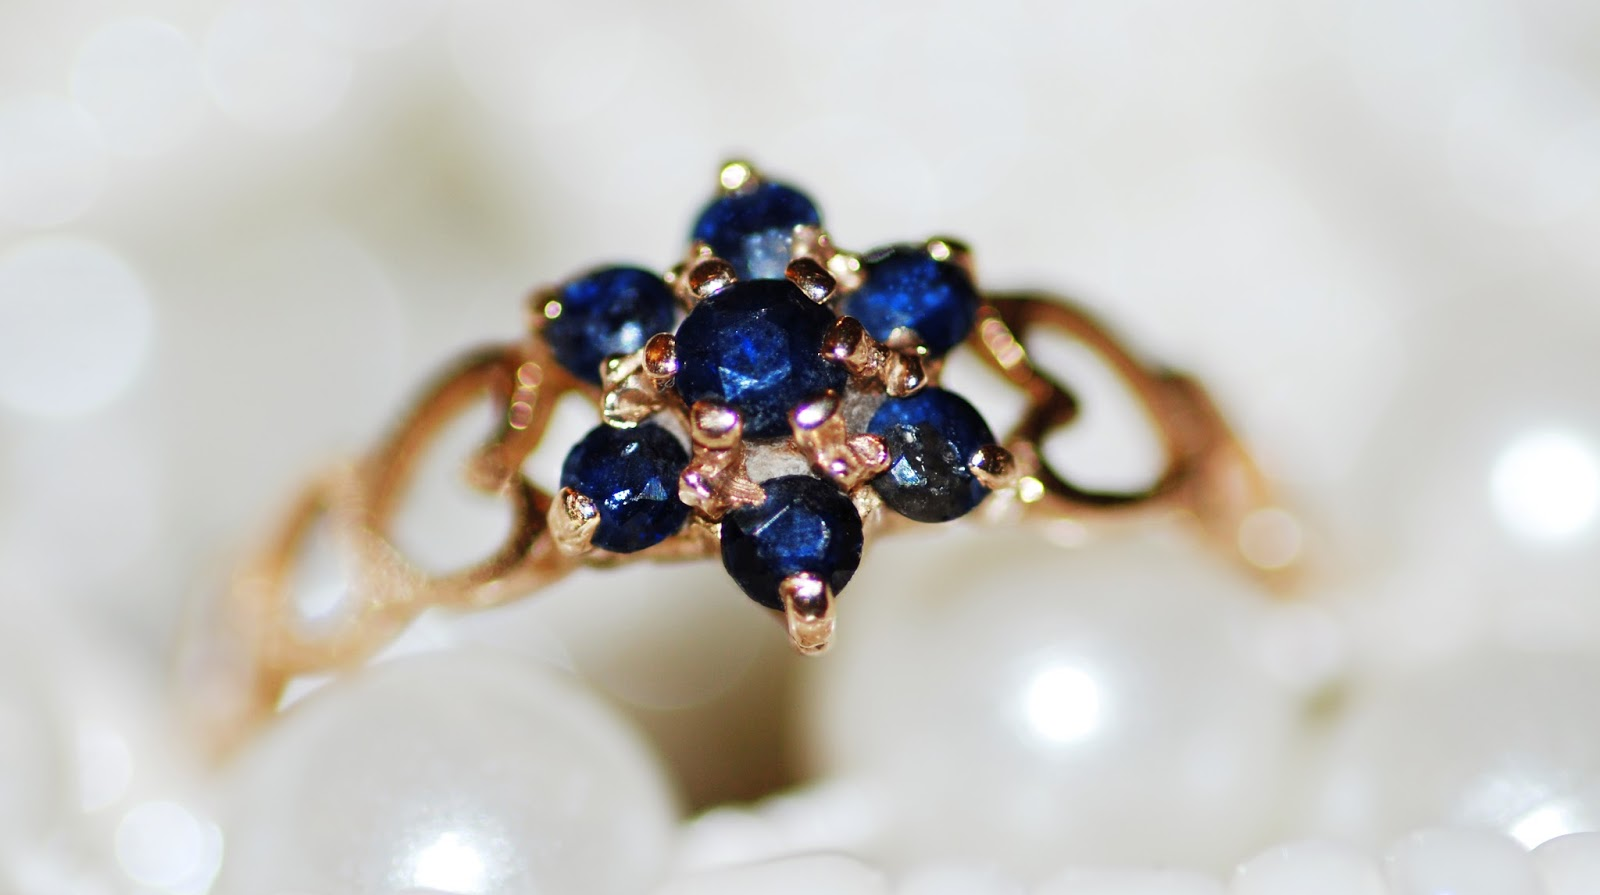 Generic image of a Sapphire ring